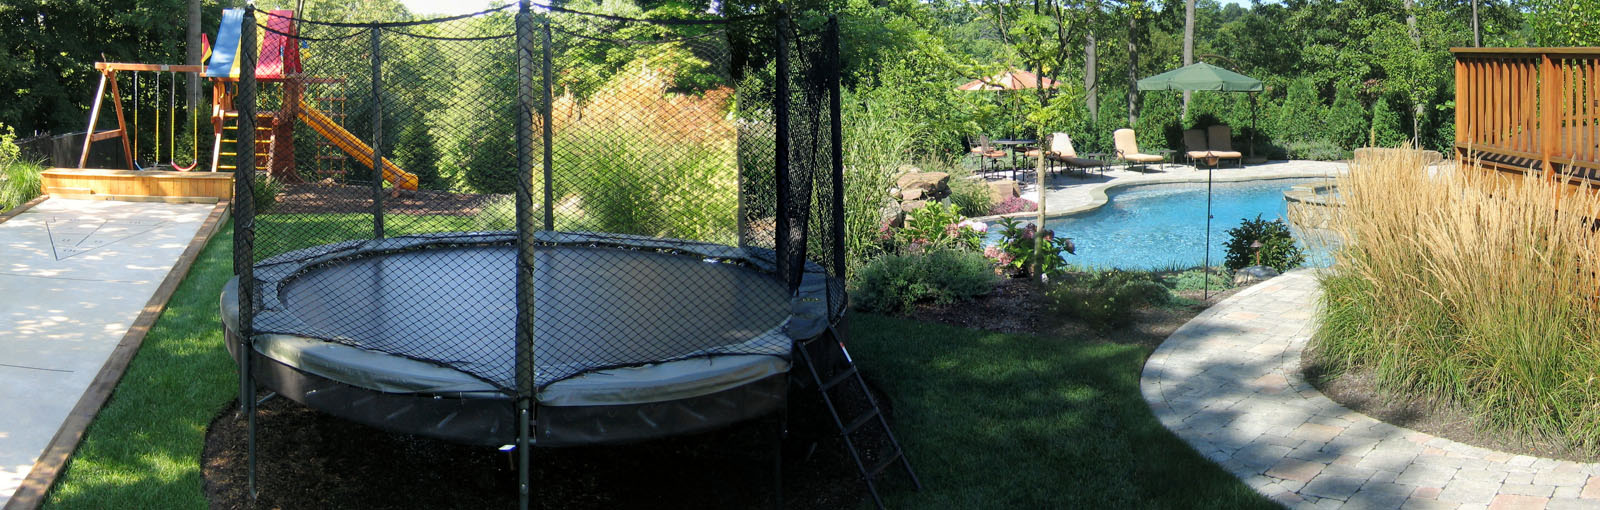 Play Area, Trampoline, Pool, & Walkway - North Jersey